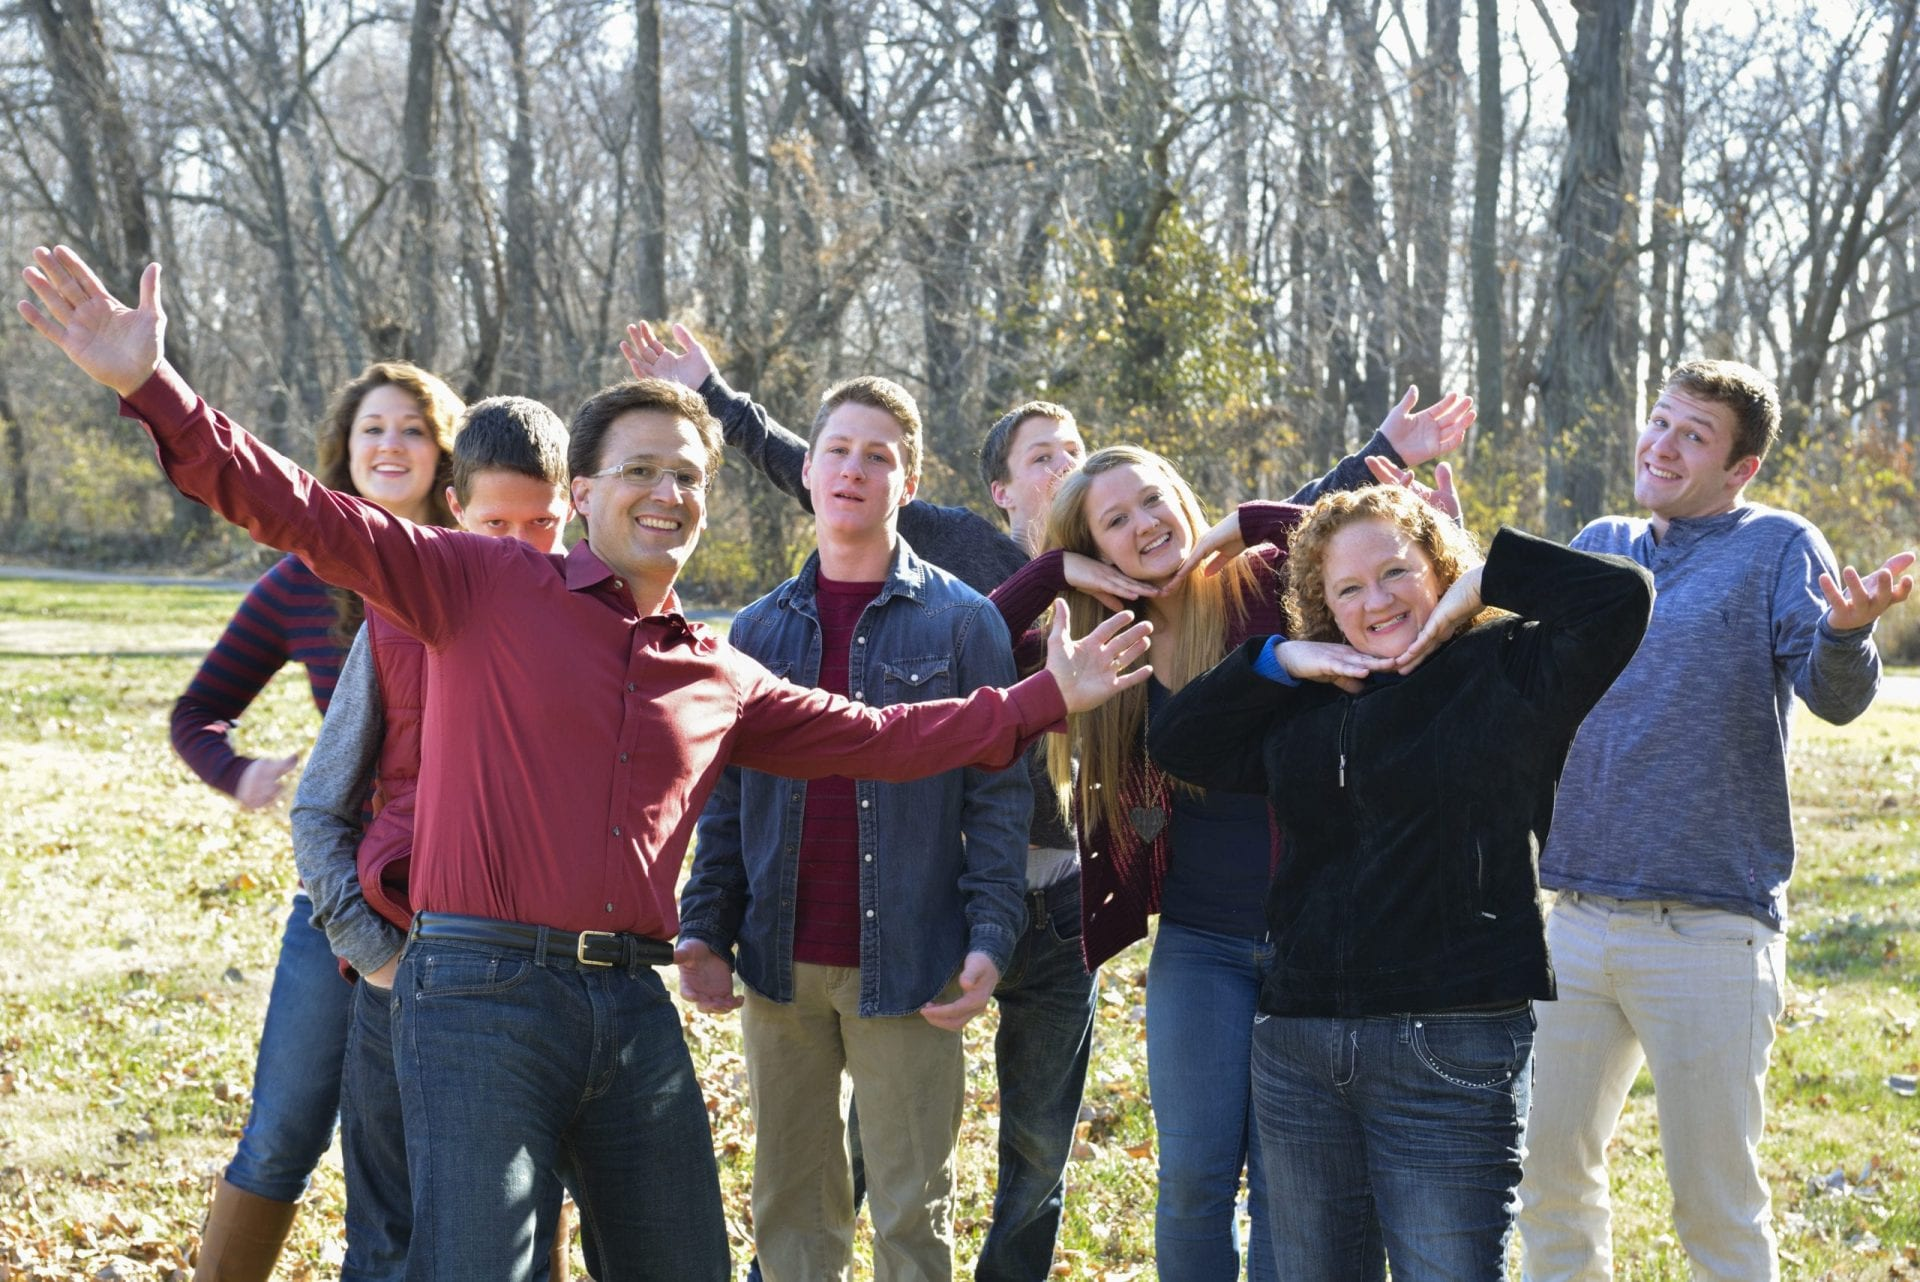 The Kucera Family posing in a park for a family photo 2012